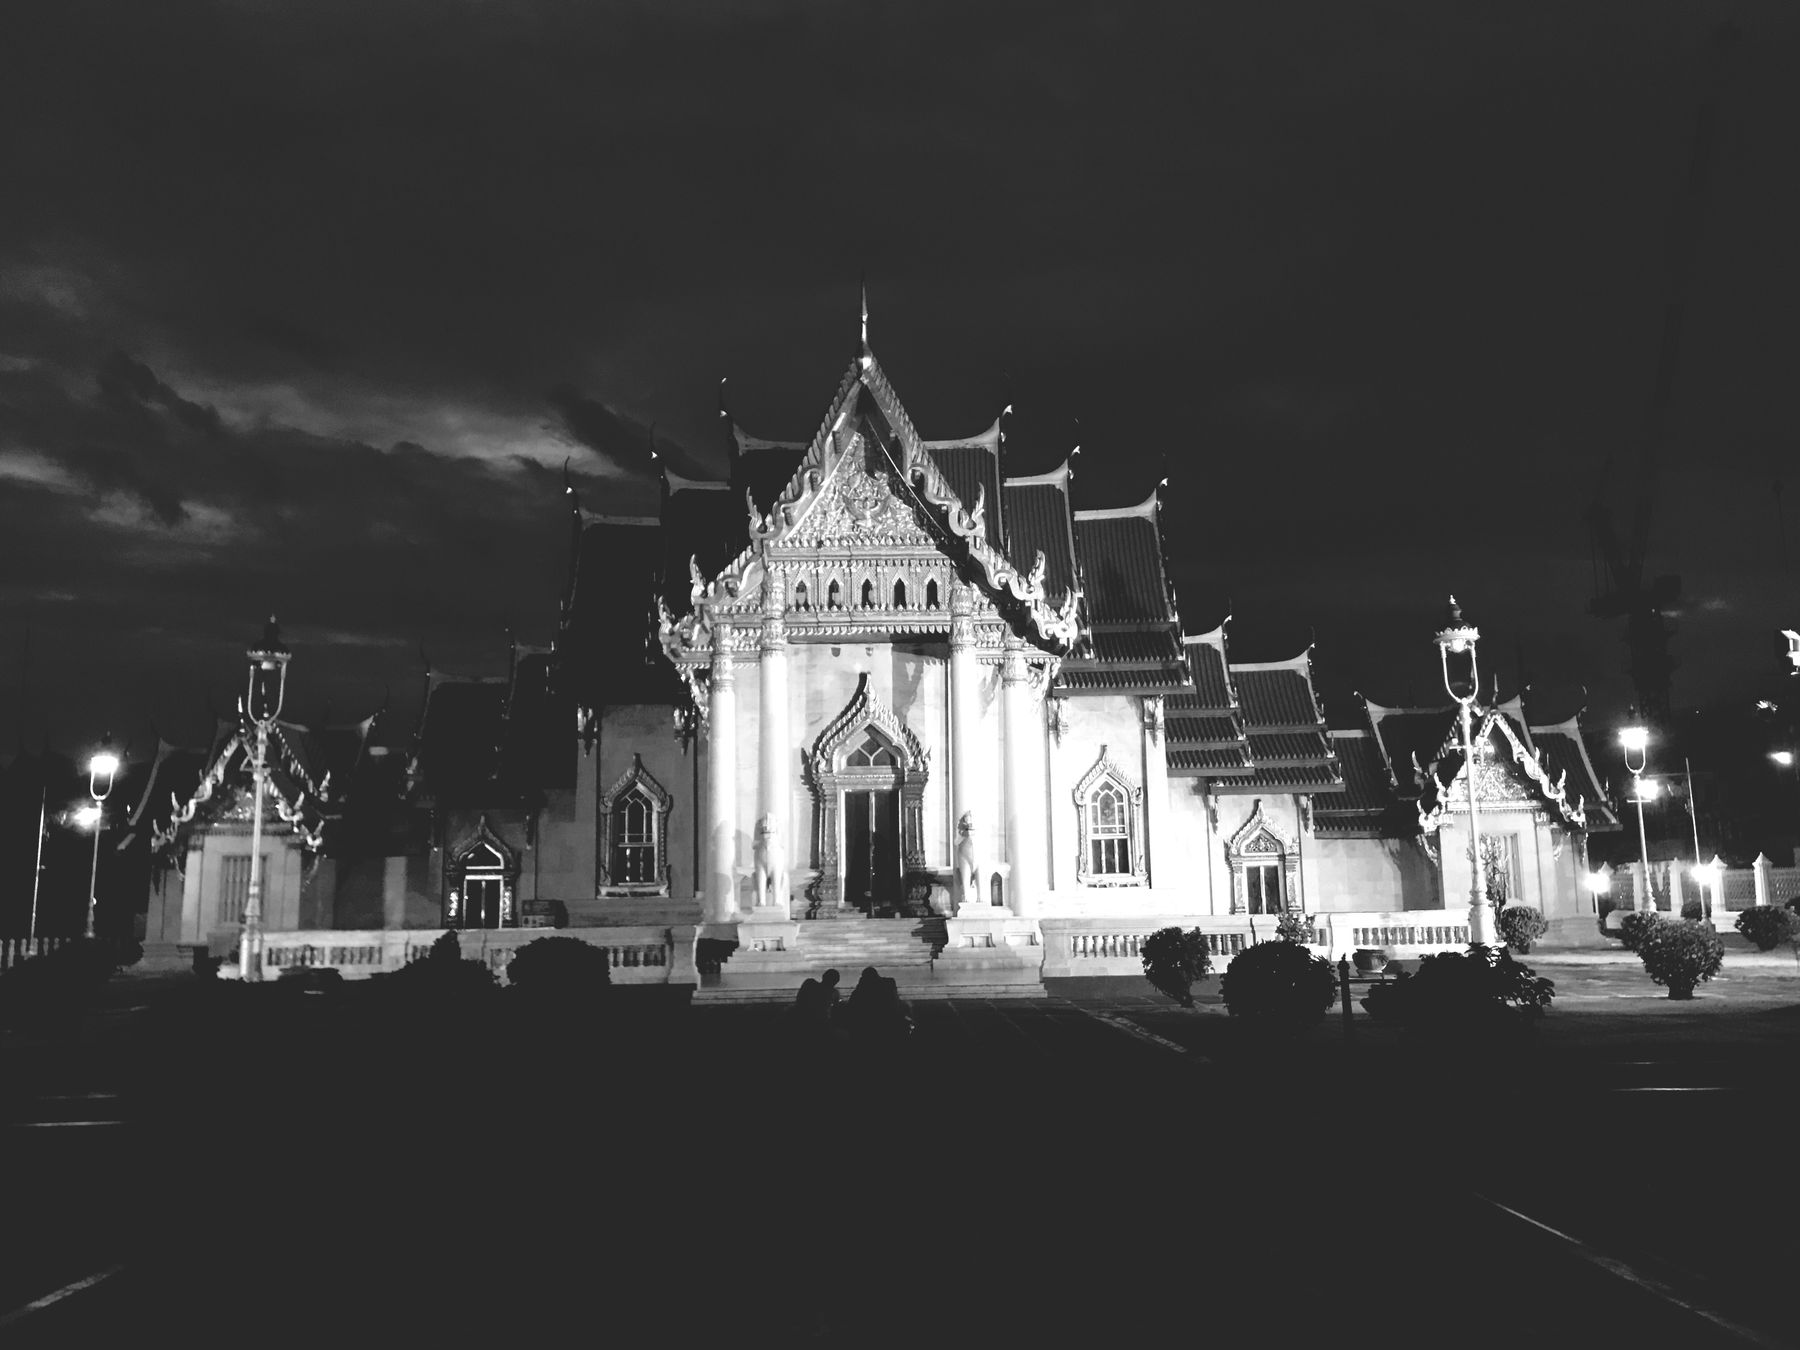 Religion Architecture Spirituality Built Structure Place Of Worship Building Exterior Sky Night Illuminated Travel Destinations Travel Outdoors Cloud - Sky Statue City Sculpture No People Wat Benchamabopit Bangkok Thailand. Watbenchamabophit